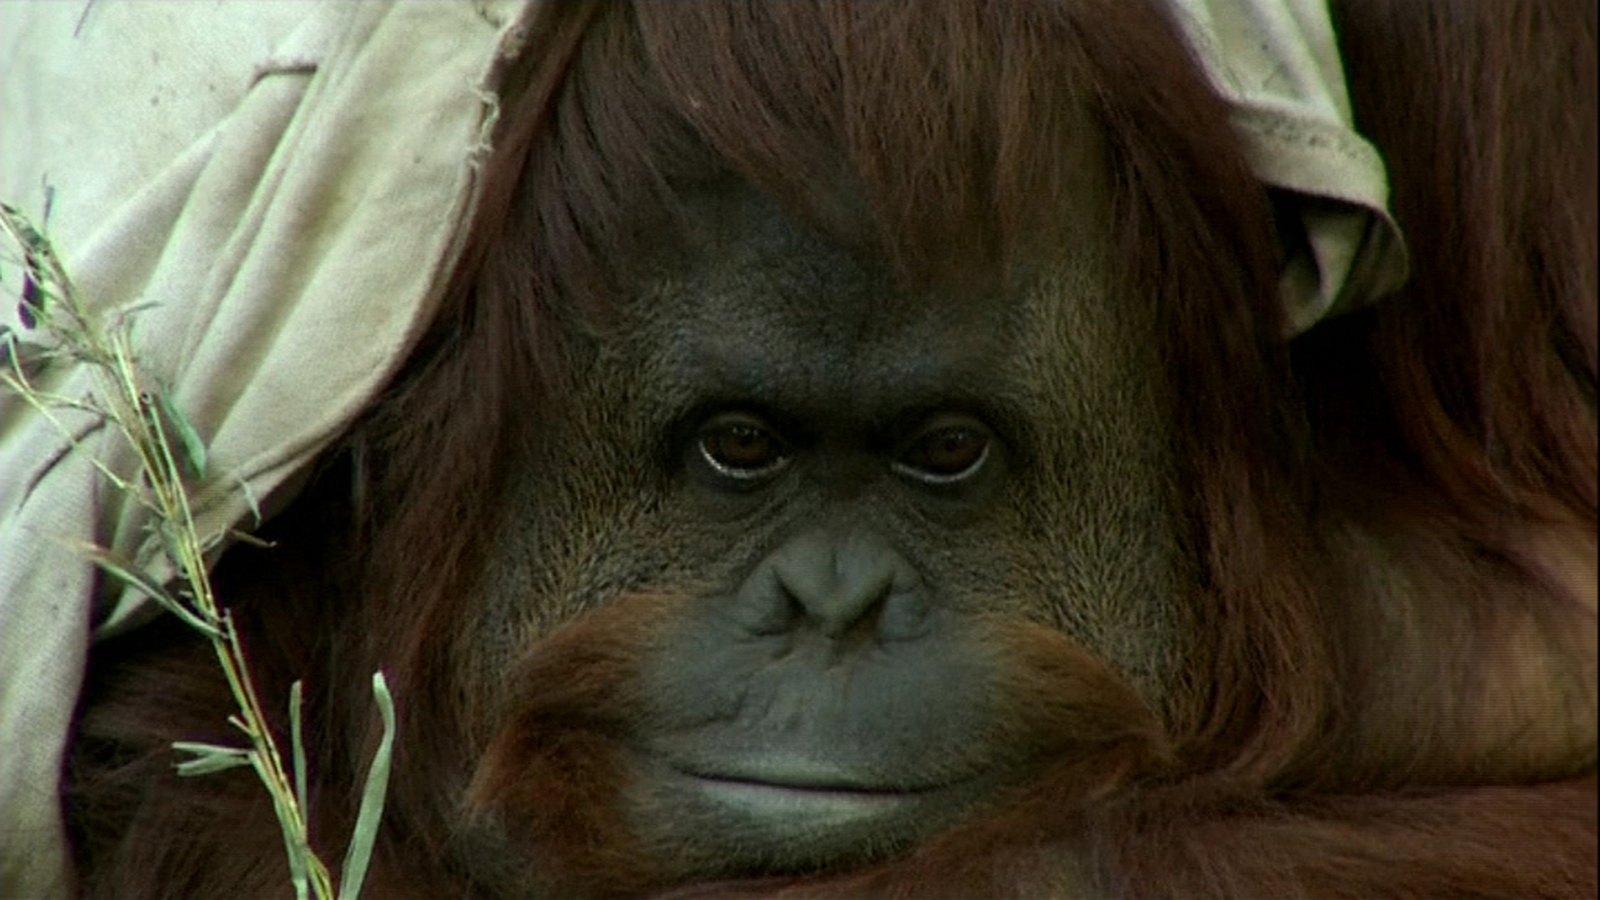 Court To Decide If Orangutan Person Can Be Released From Zoo